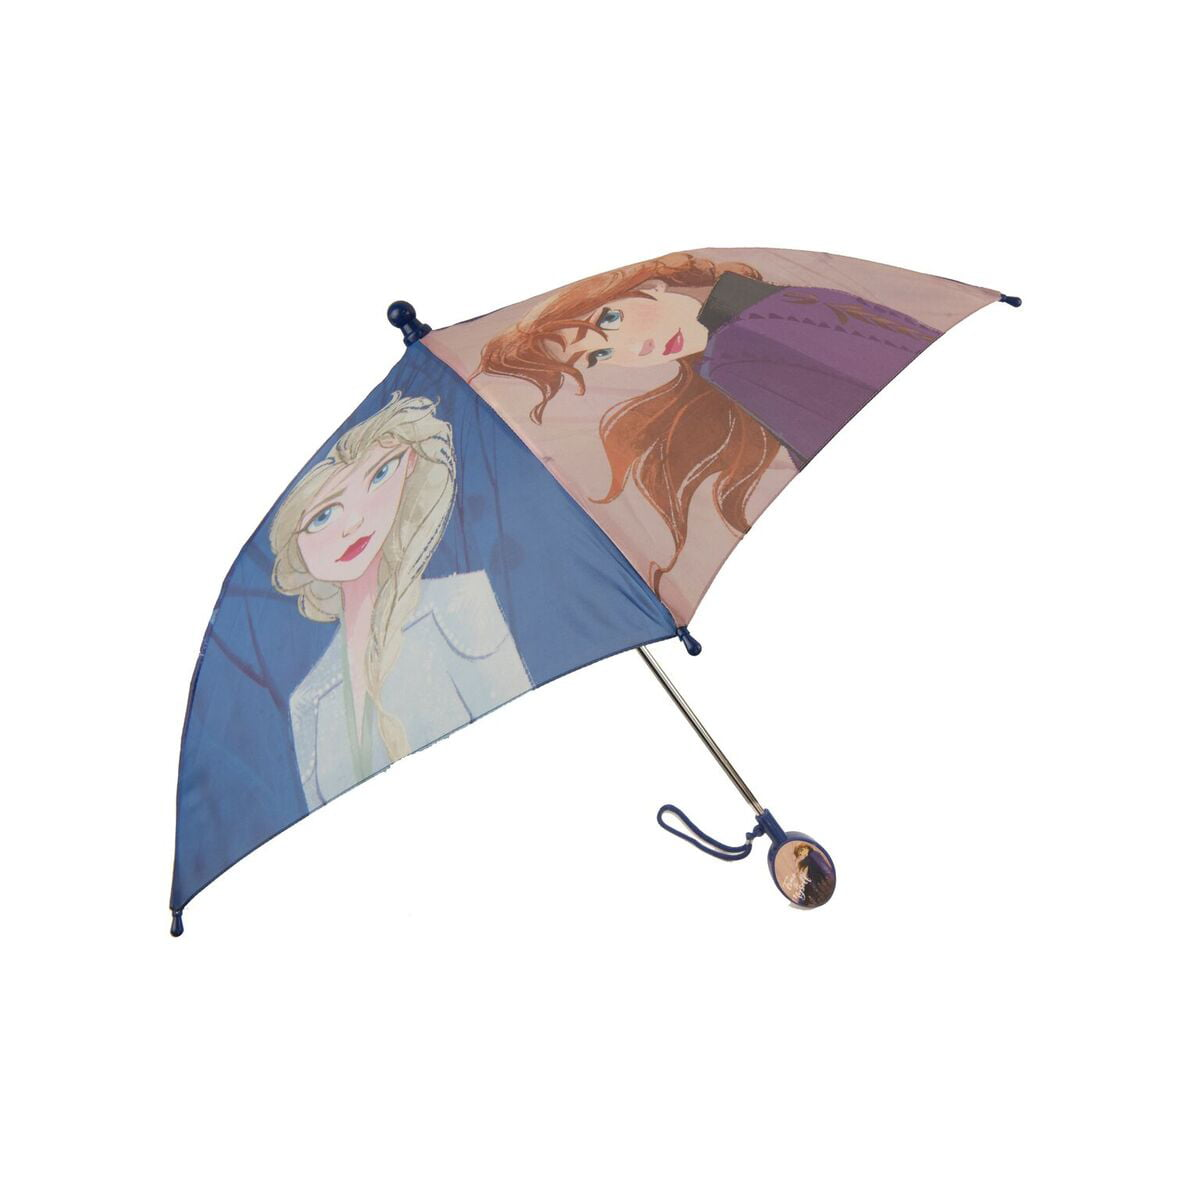 Umbrella Princess Disney Tangled Rapunzel New Toys Kids Girls a03205 by Disney